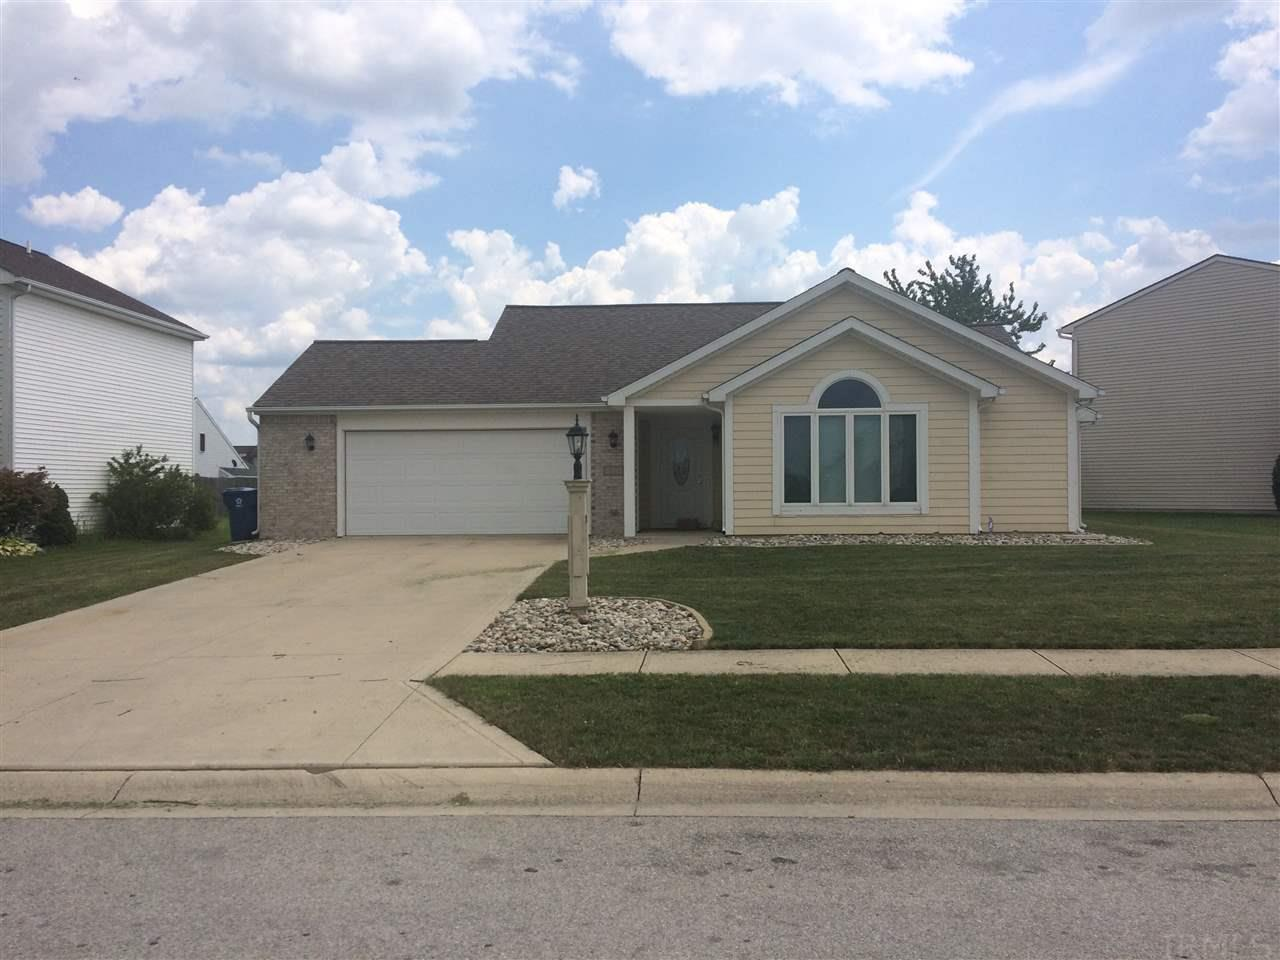 8623 Chesterfield, Fort Wayne, IN 46819